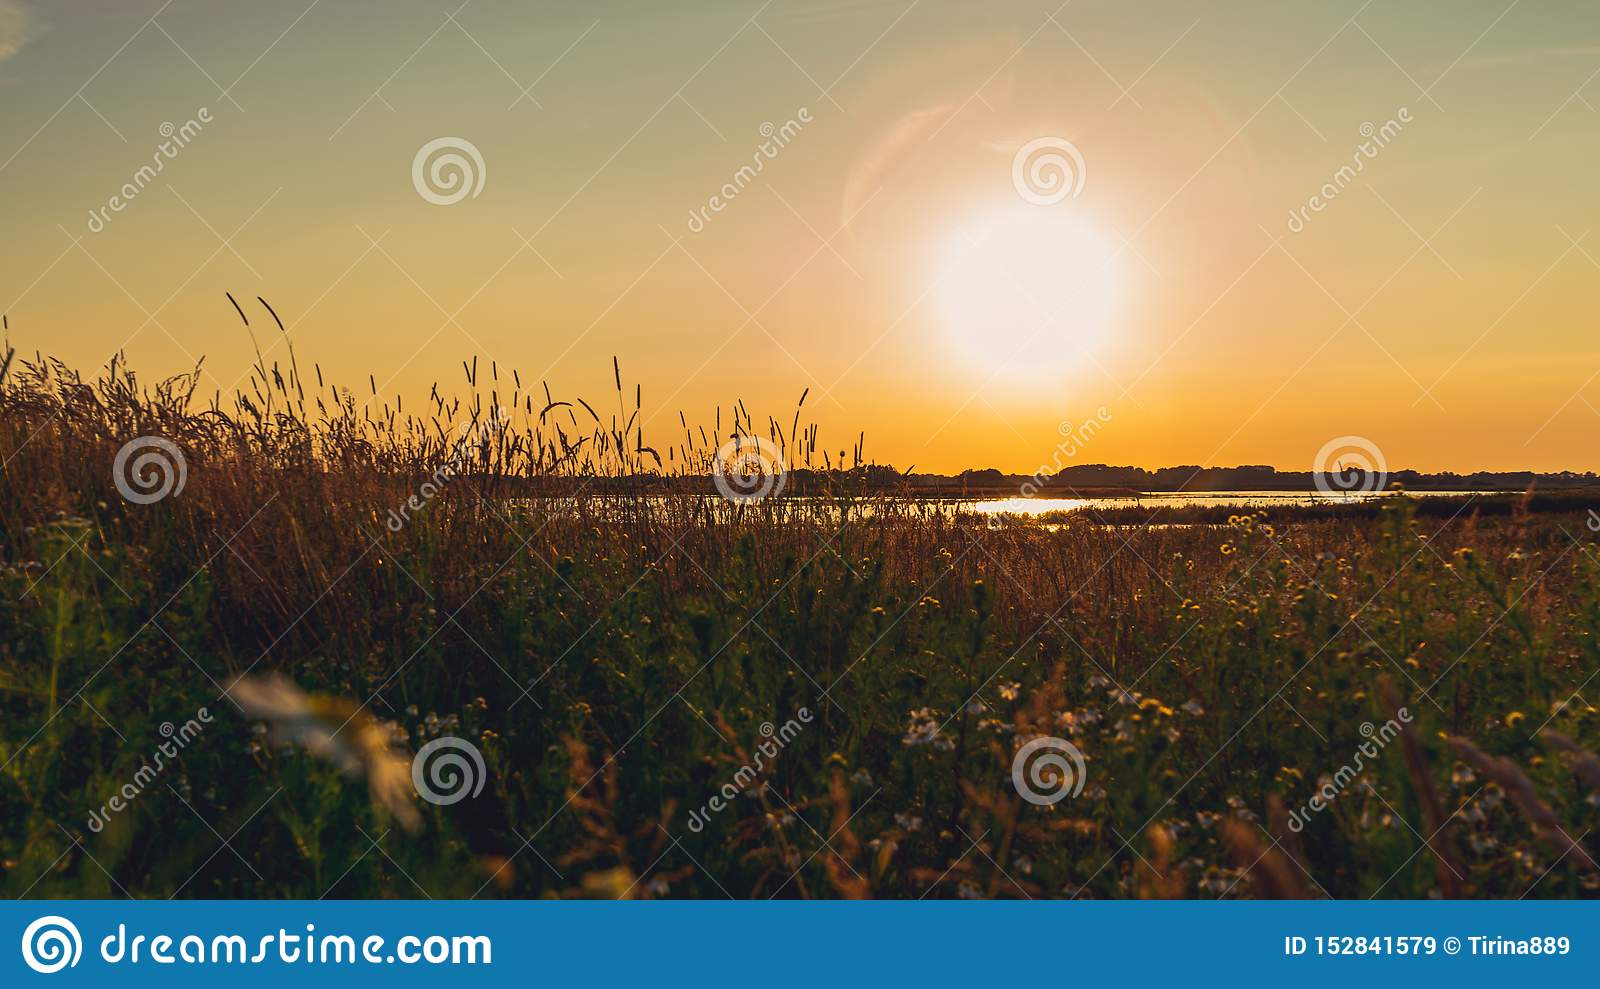 Scenic landscape of field in the evening light, before sunset